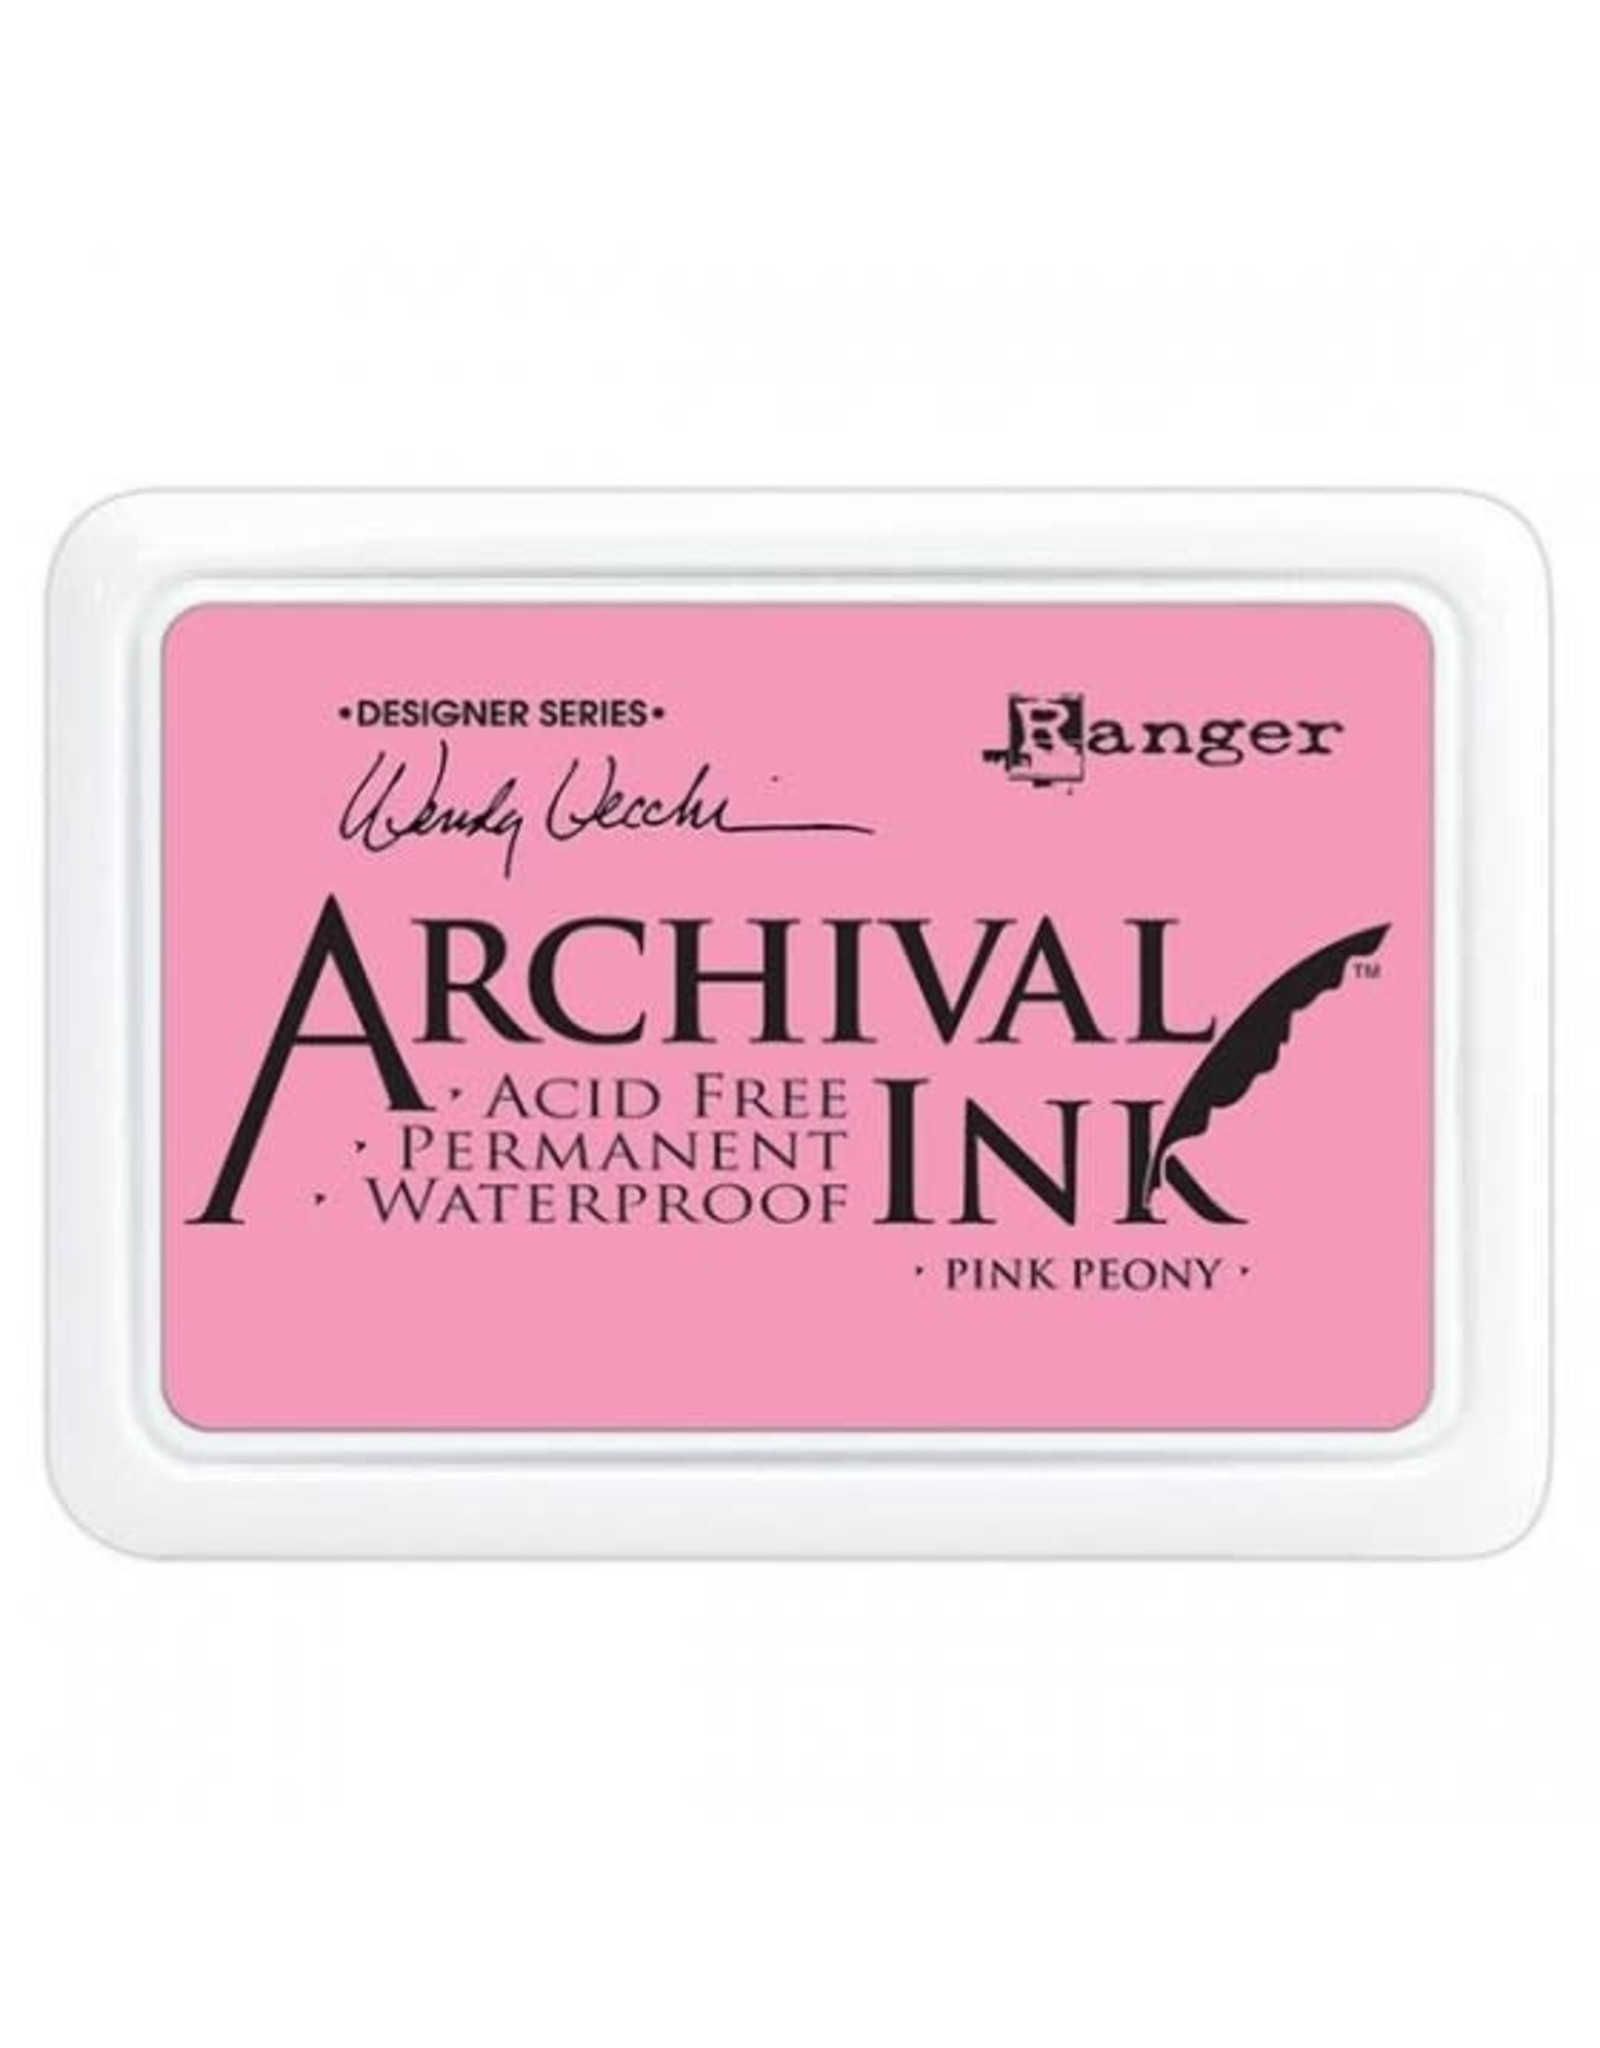 Ranger Archival Ink - Pink Peony